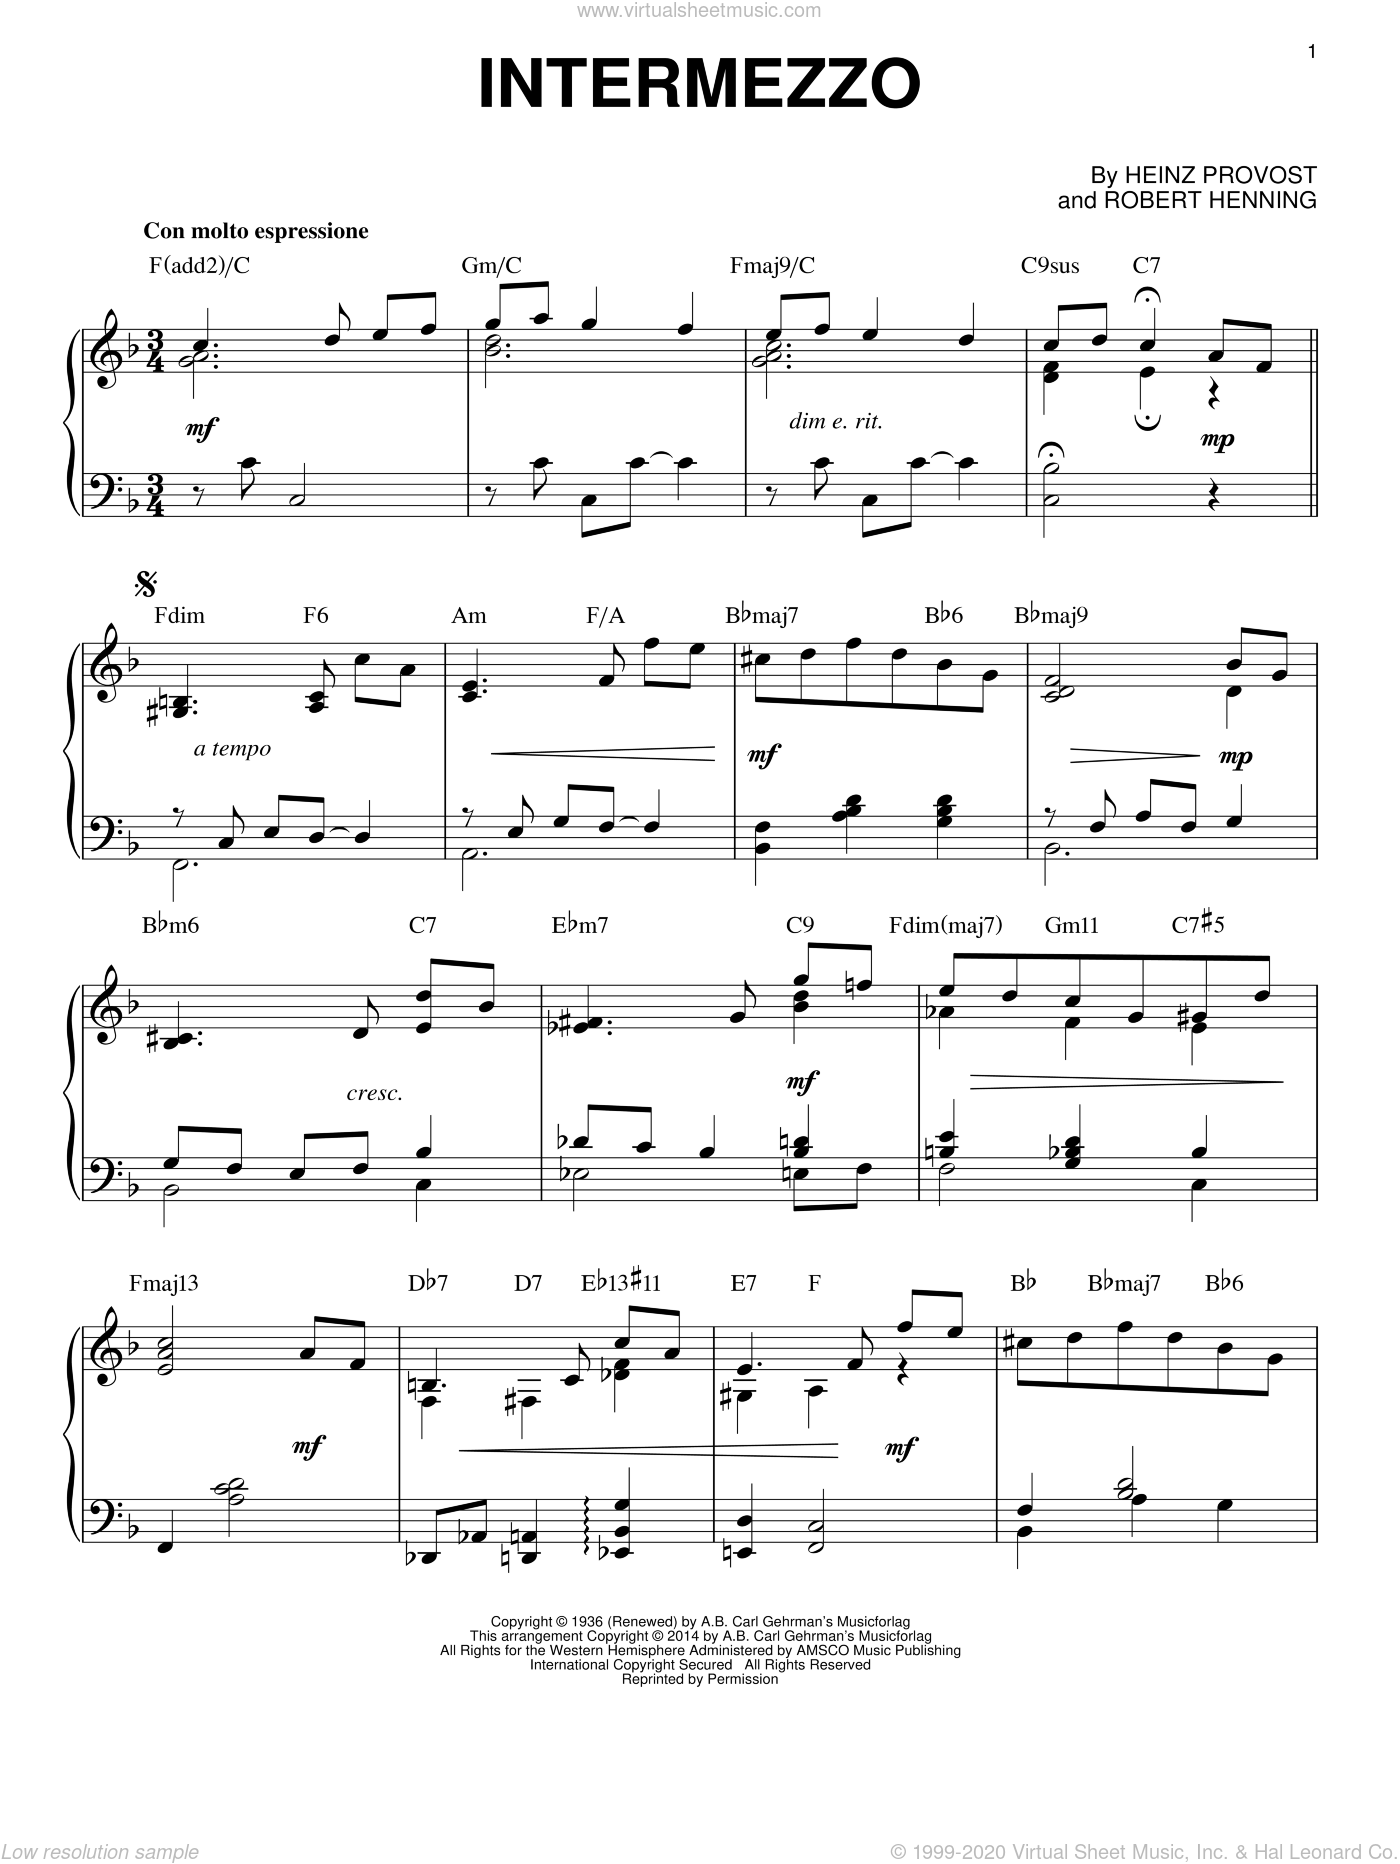 Intermezzo sheet music for piano solo by Heinz Provost, intermediate